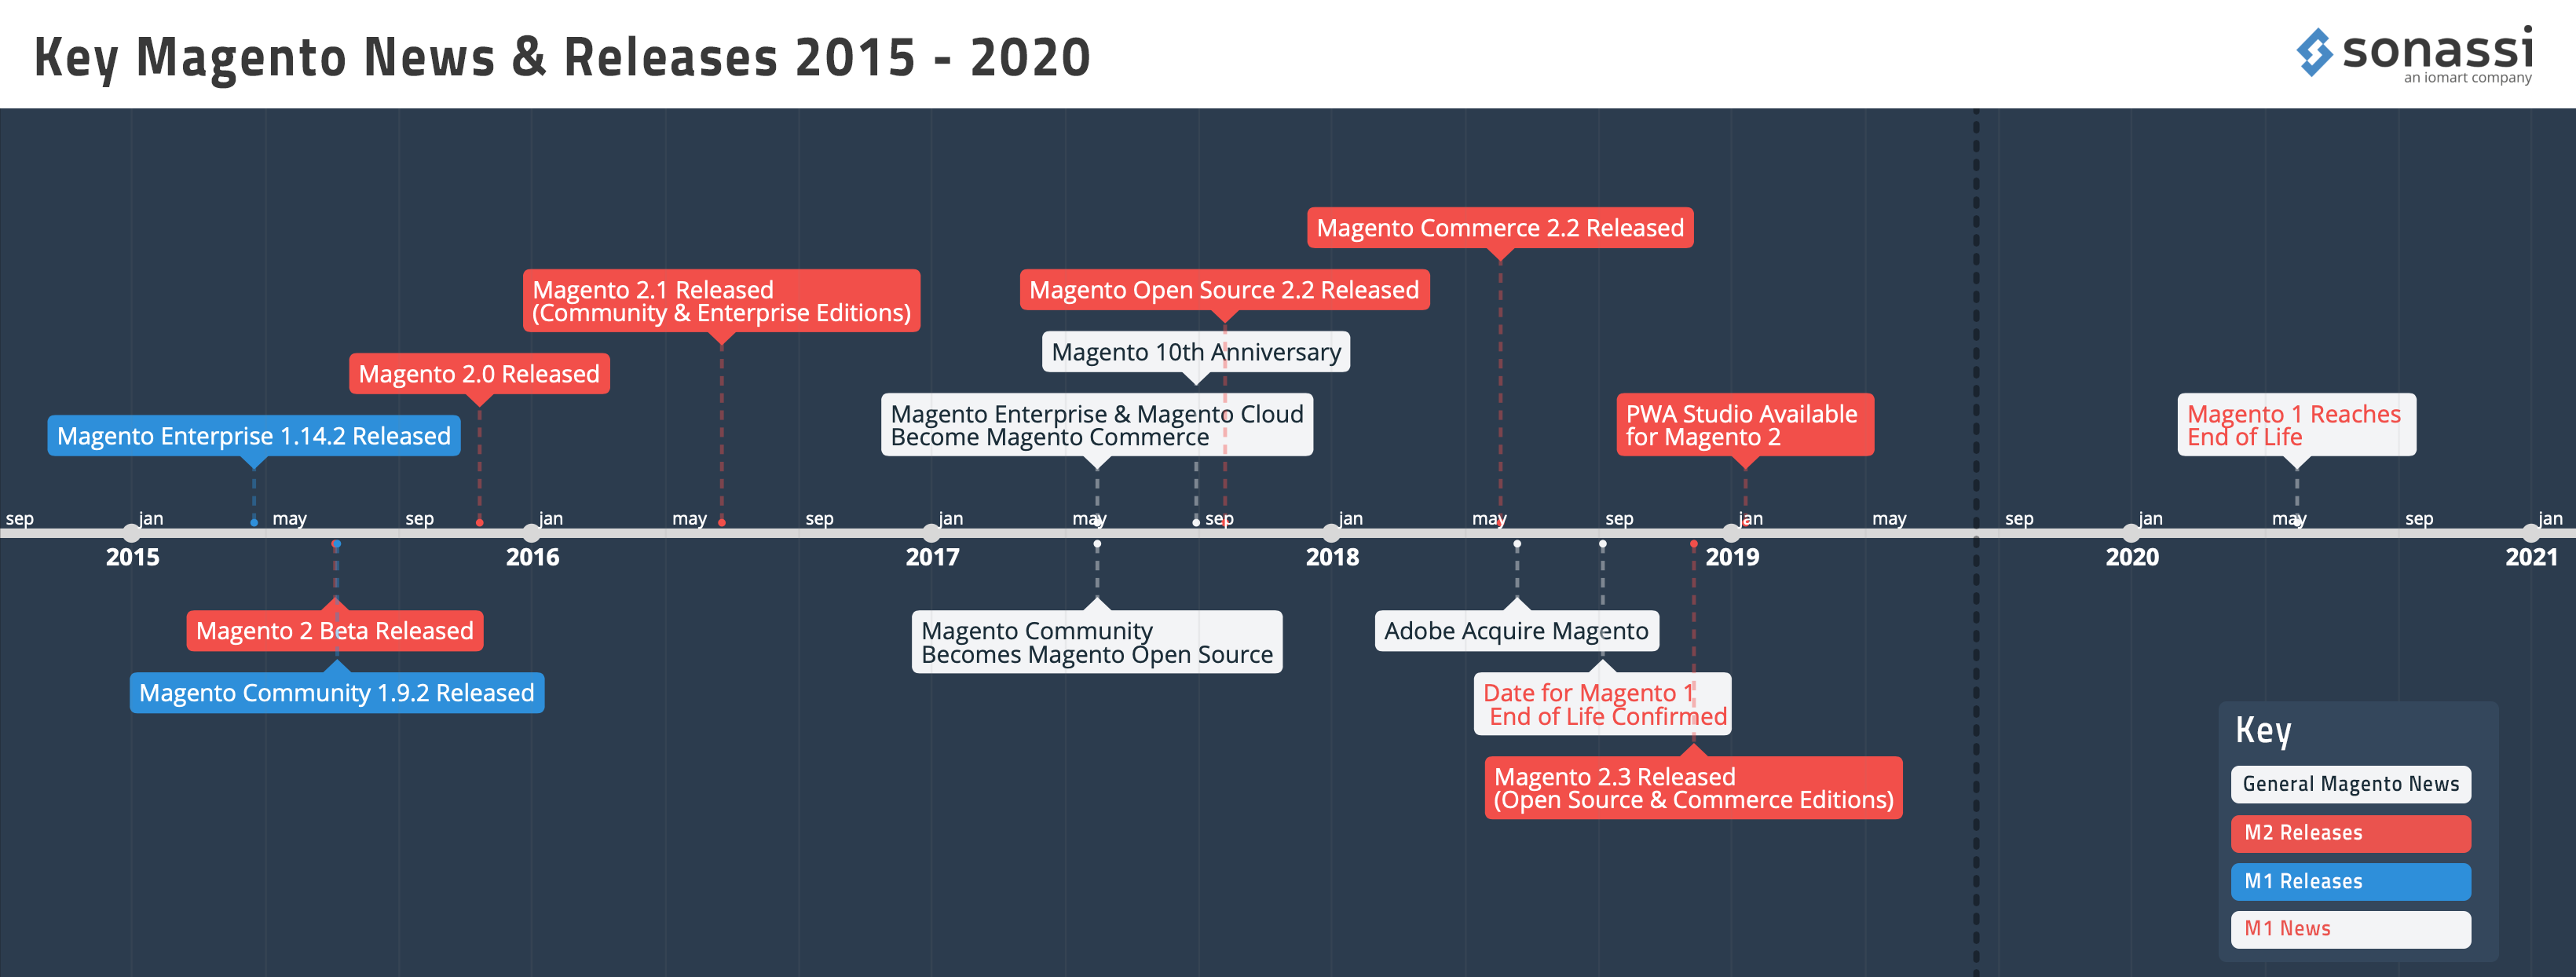 Magento News and Release Timeline